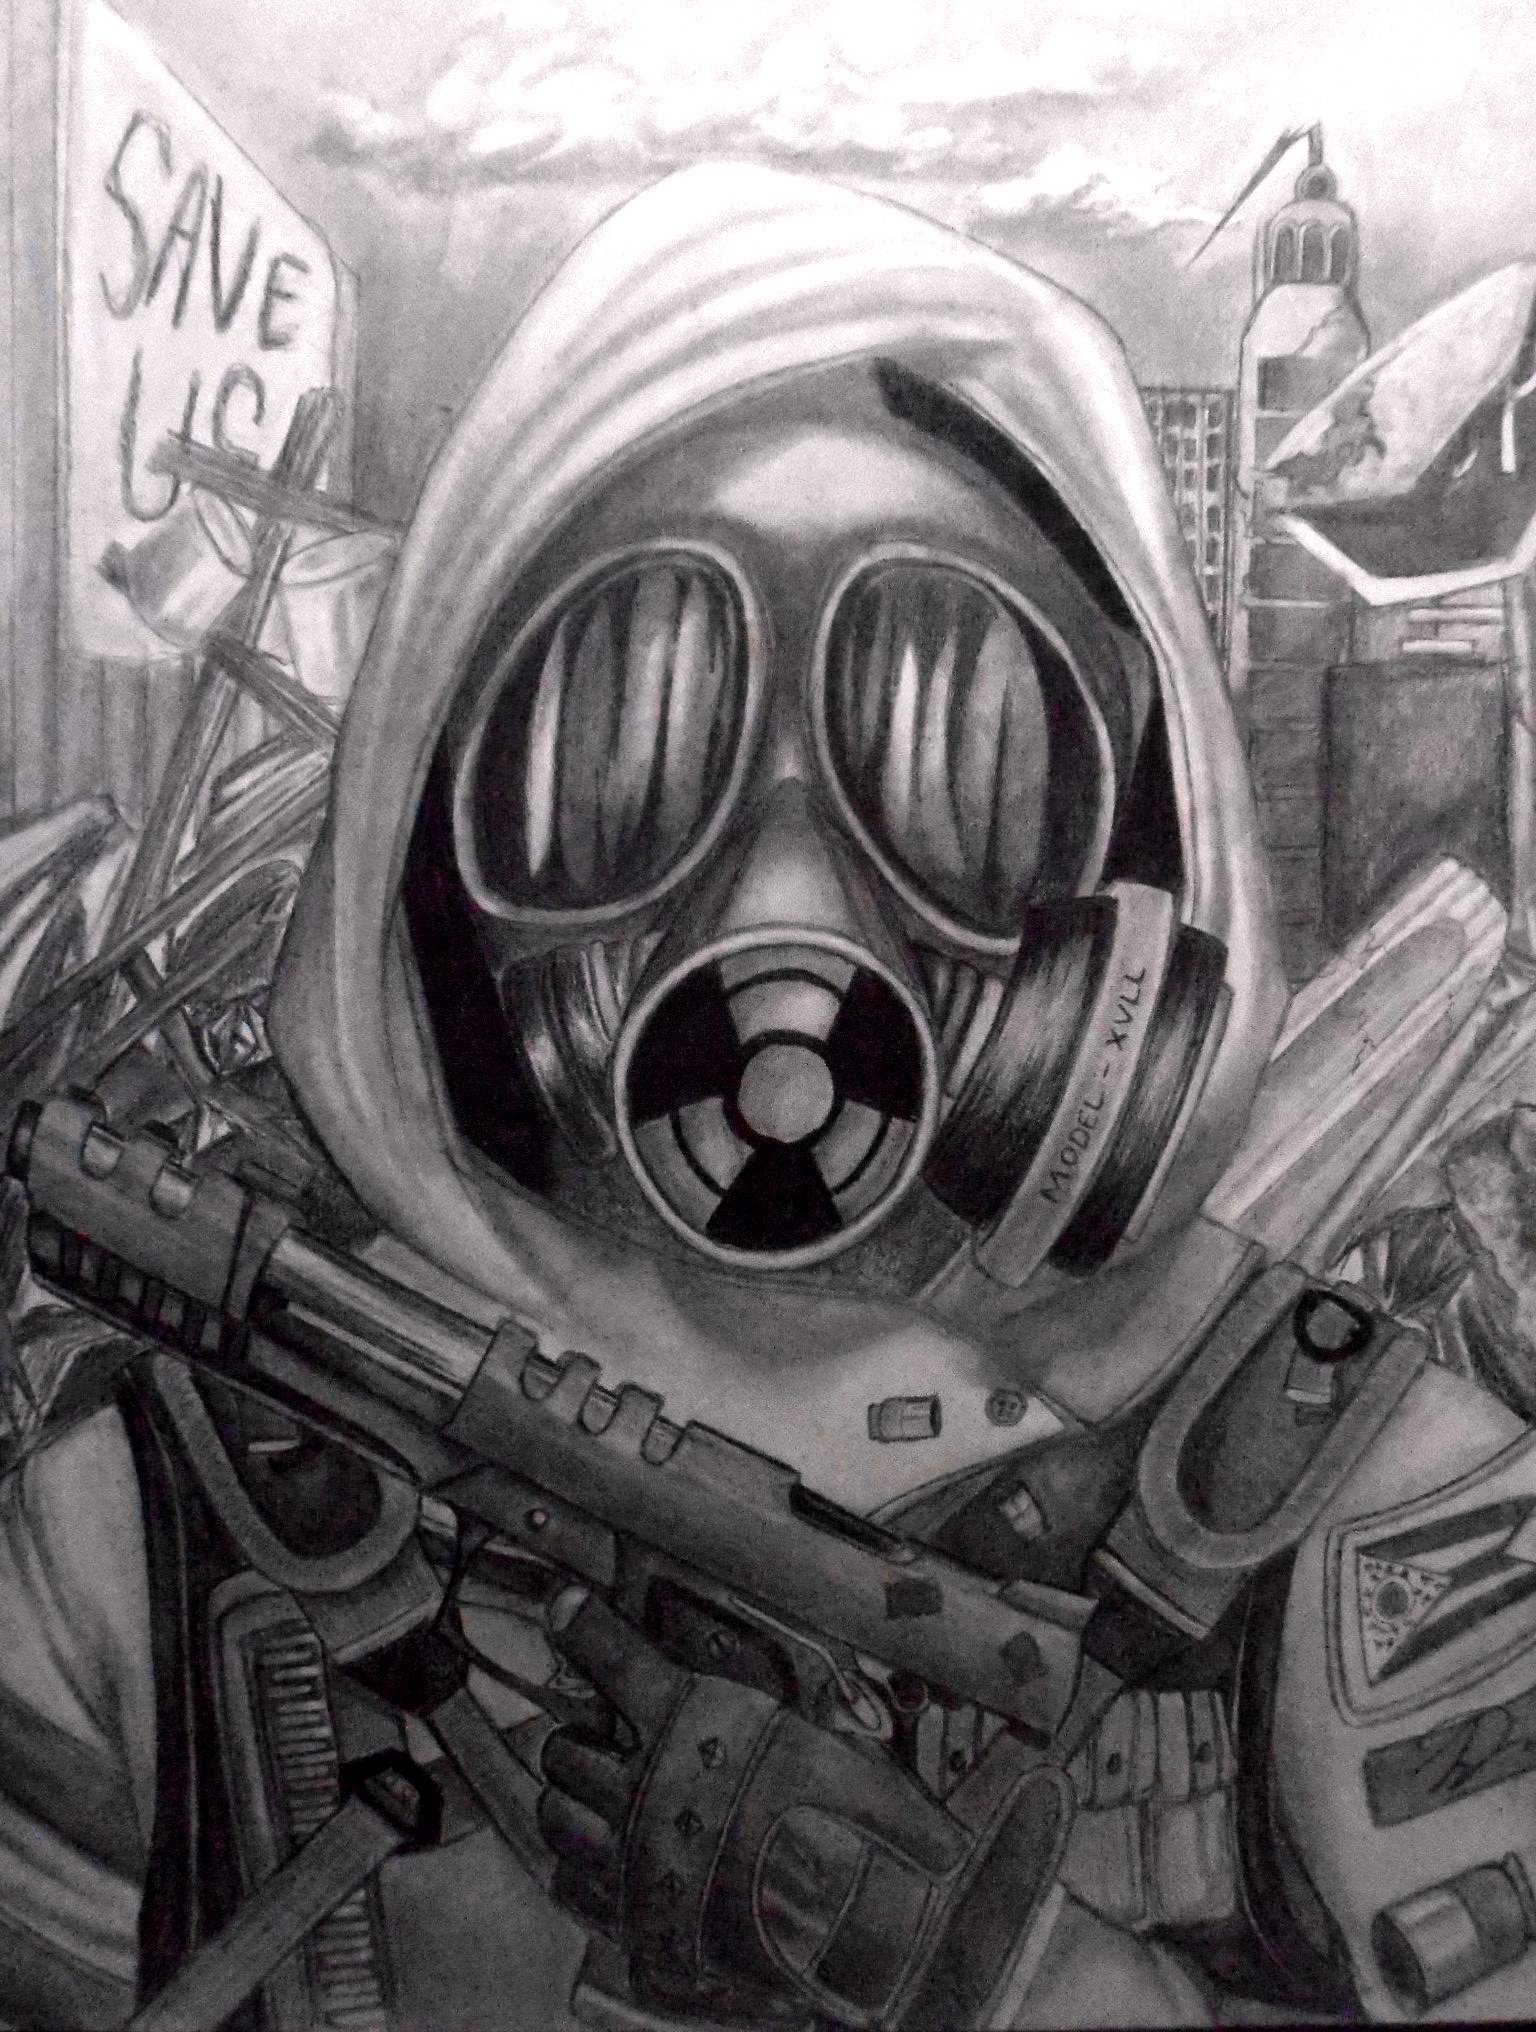 Mask dude by idont0know on deviantart gas mask dude by idont0know gas mask dude by idont0know voltagebd Image collections